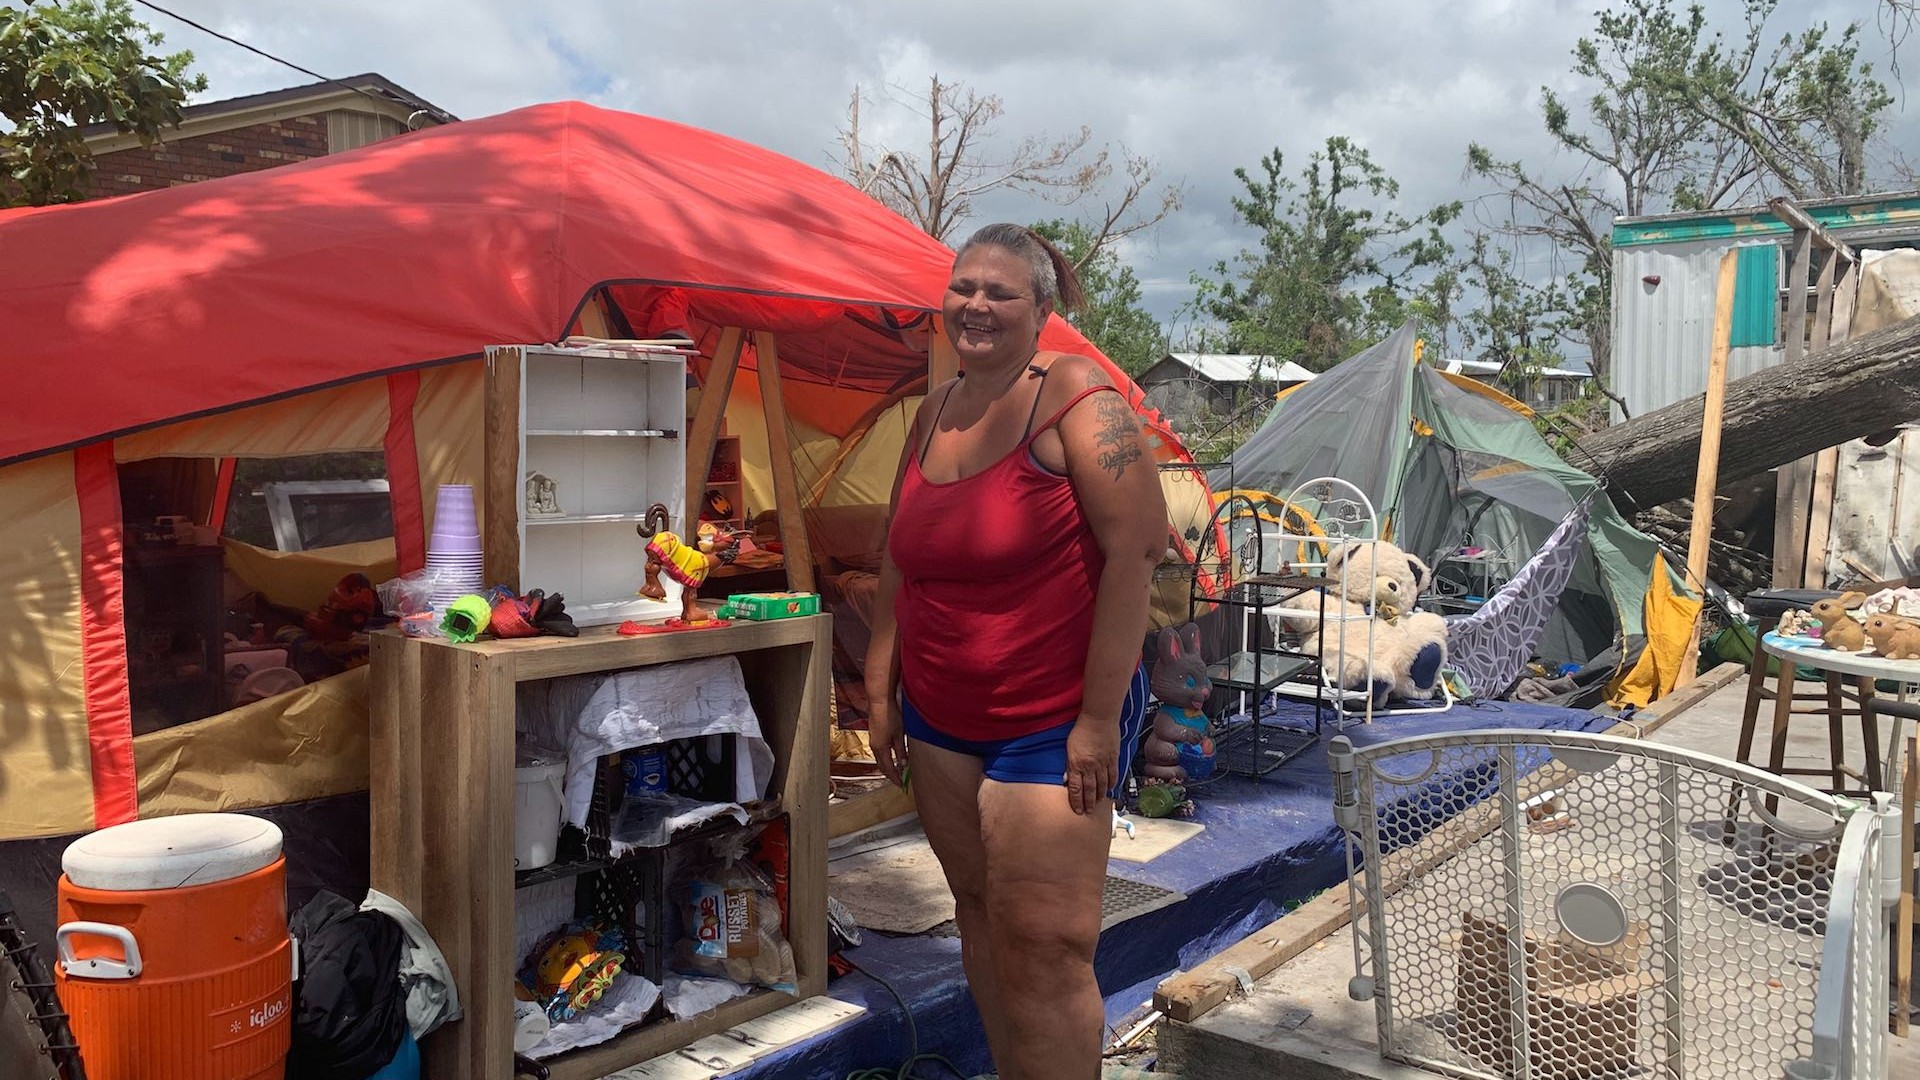 The Forgotten People Living in Tents 7 Months After Hurricane Michael